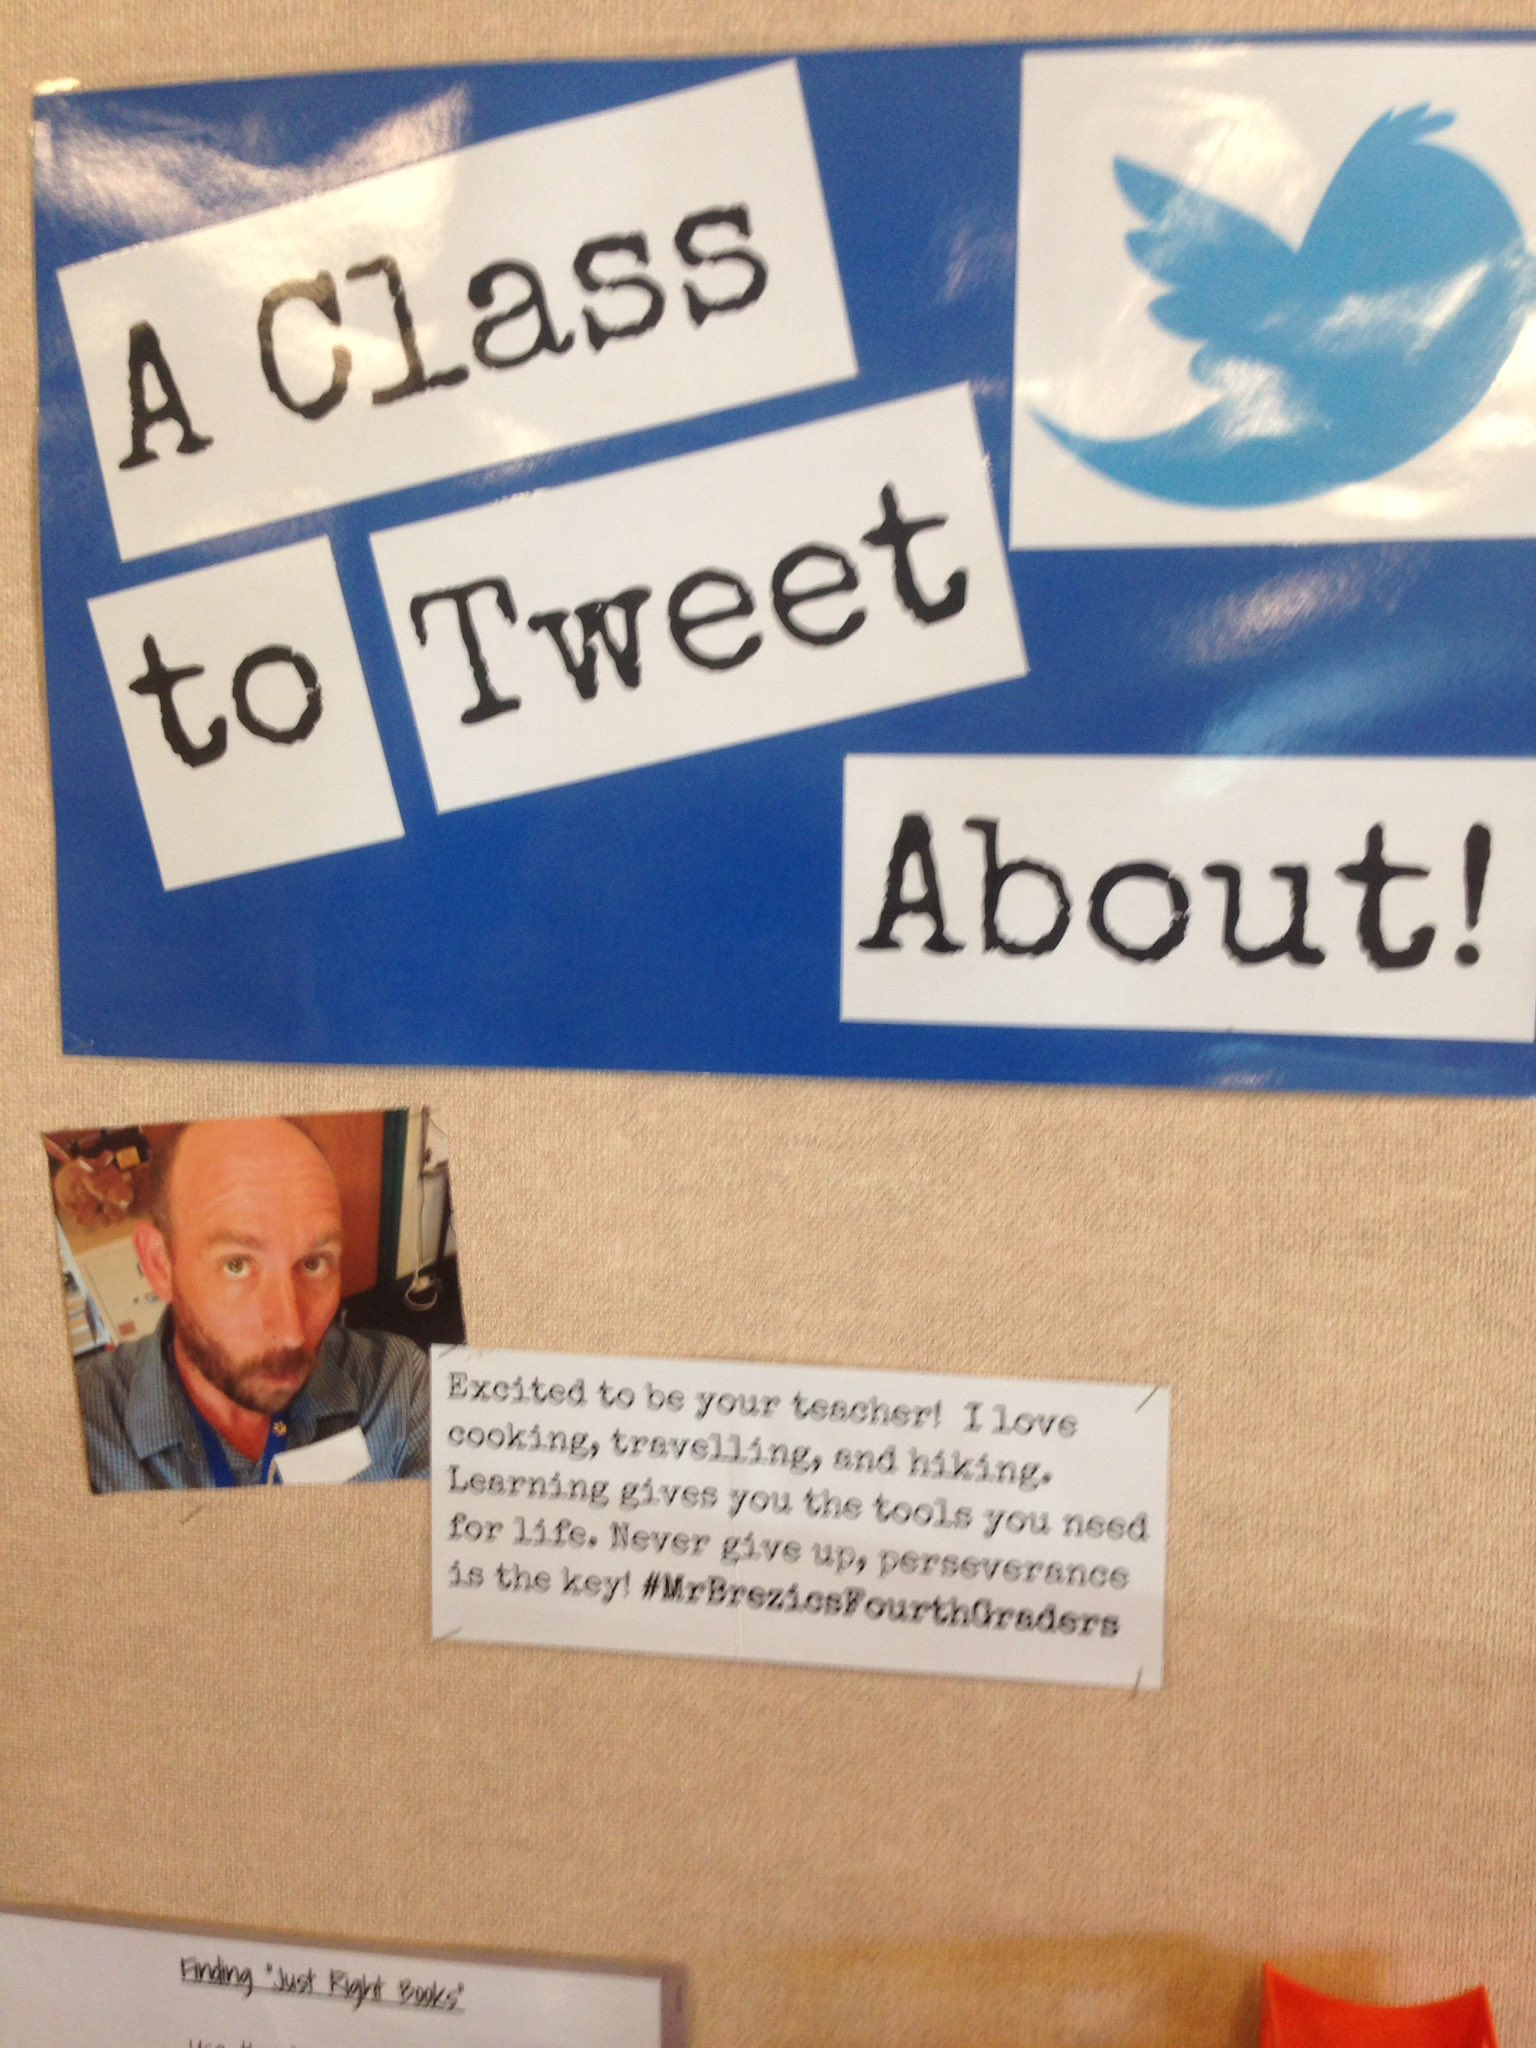 @mrbrezic scholars are a tweetin' group this year! #vted https://t.co/RGW6KzXA5F